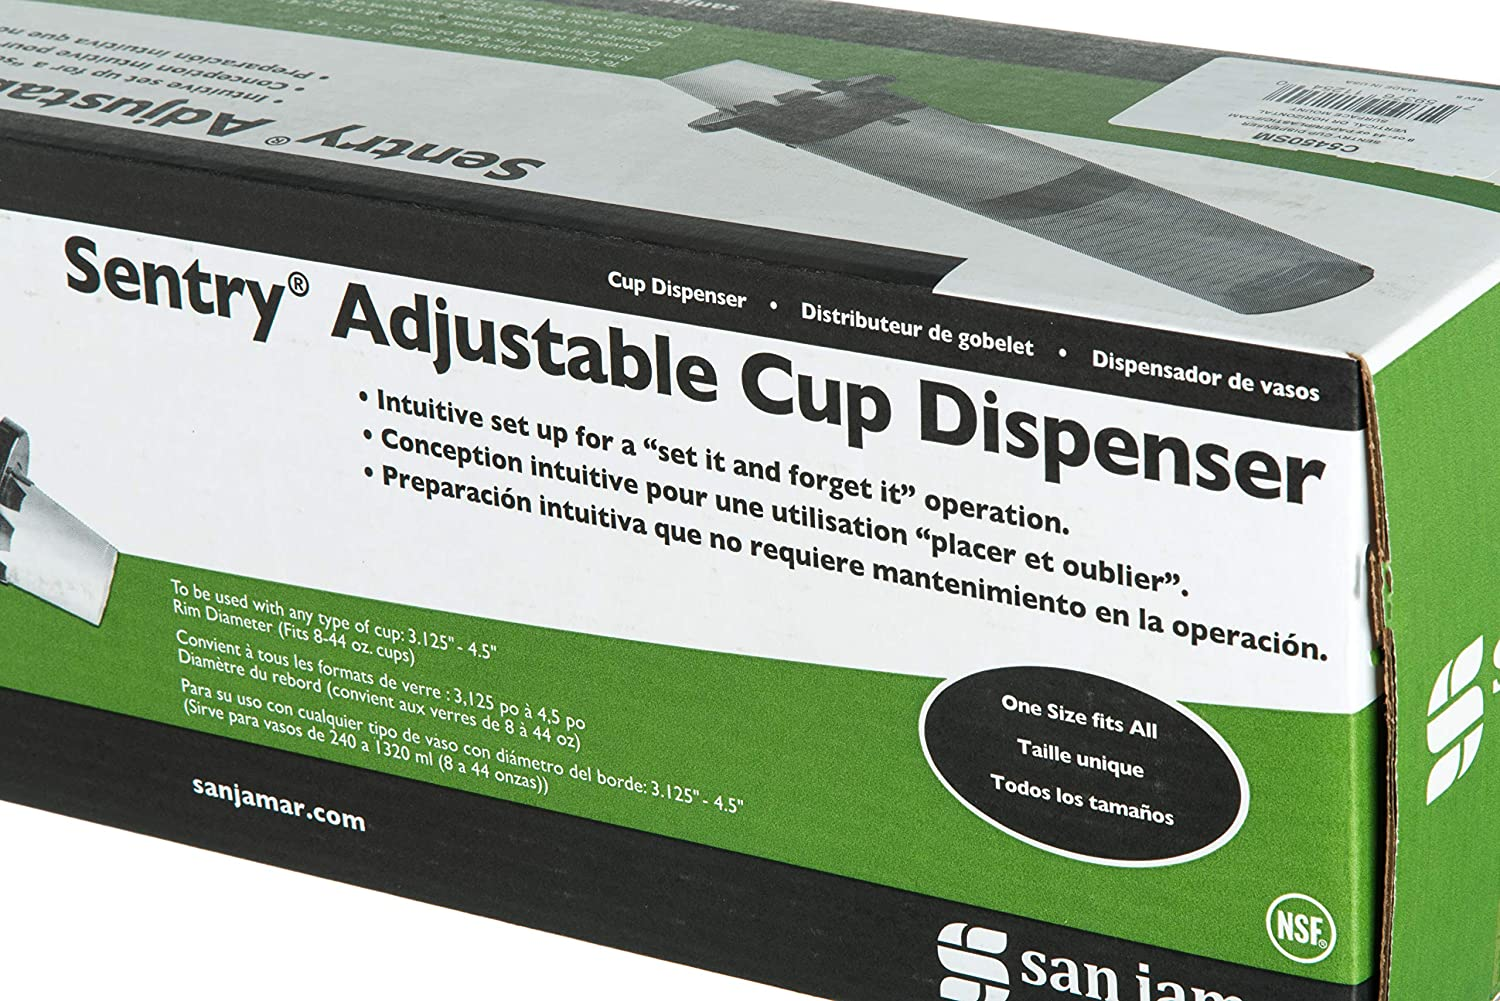 Amazon.com: San Jamar C5450SM Sentry Surface Mount Adjustable Cup Dispenser, Fits 8oz to 44oz Cup Size, 3-1/8